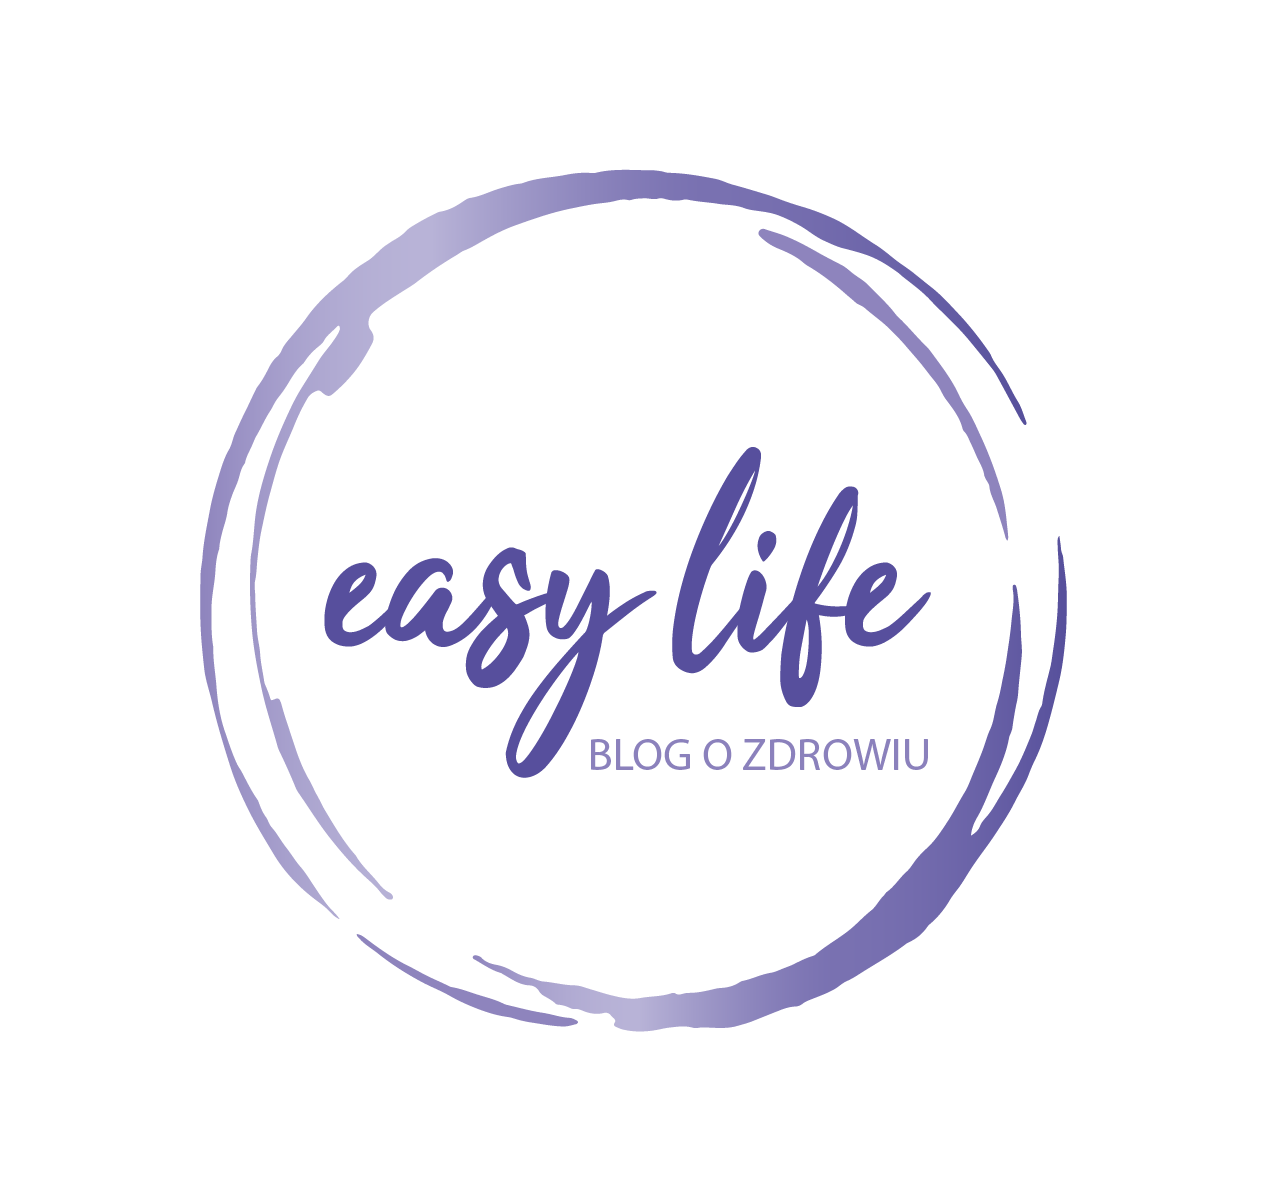 Easy steps ⋅ Easy life ⋅ Easy choice